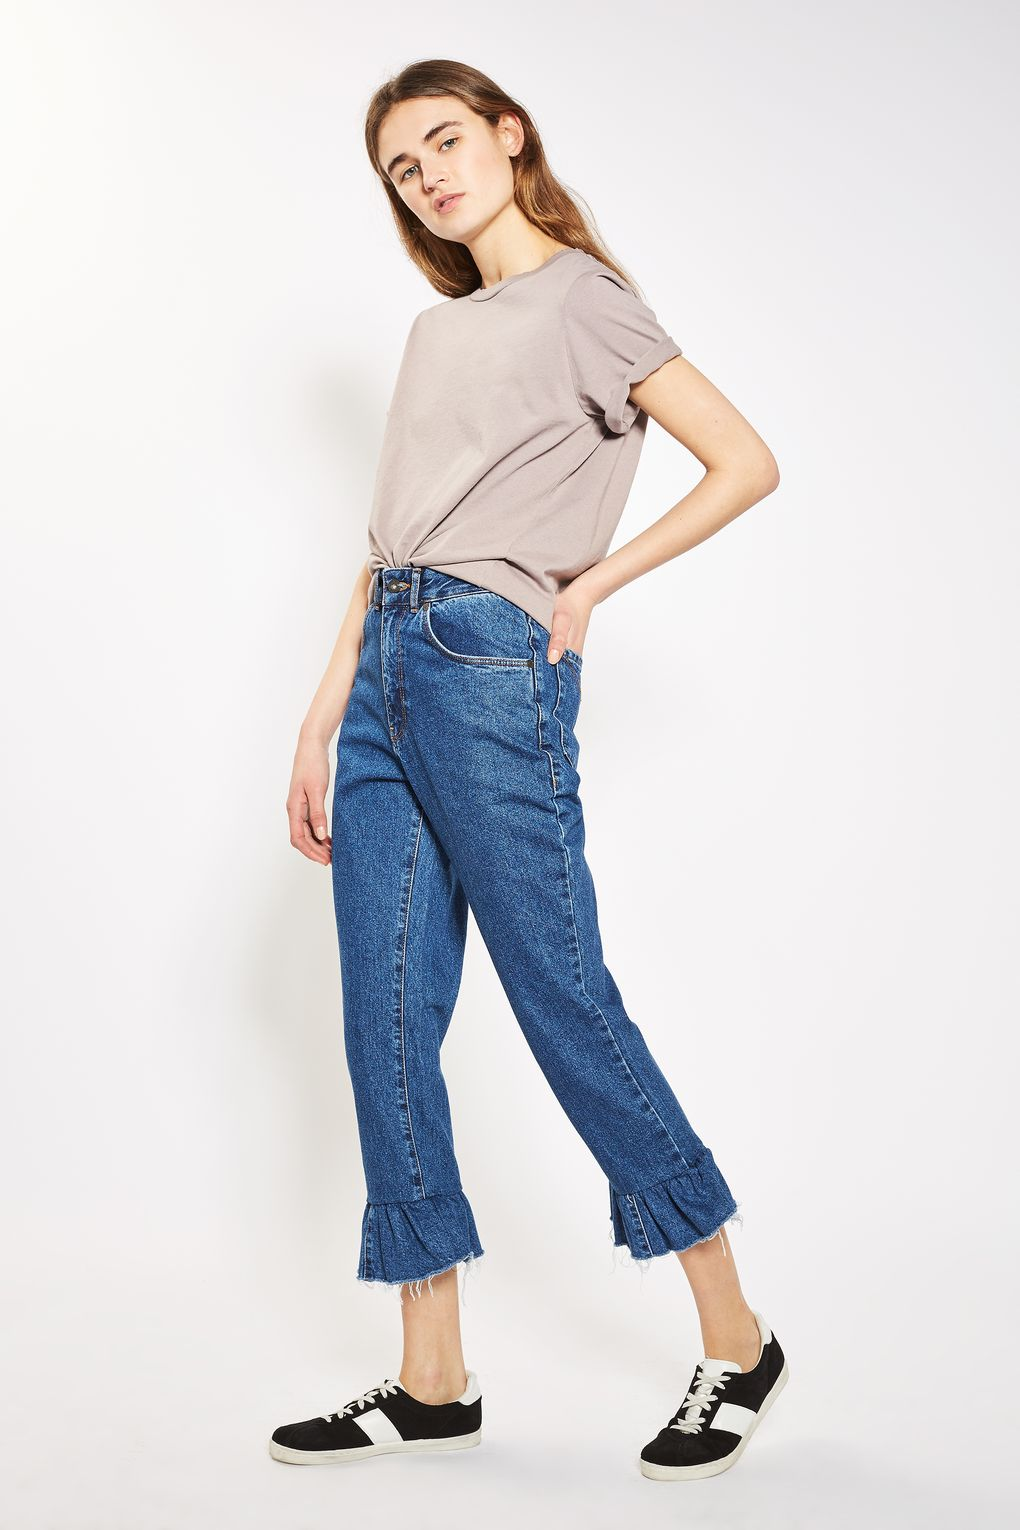 Mom jeans, <a href='http://www.topshop.com/en/tsuk/product/clothing-427/jeans-446/peplum-mom-jeans-by-the-ragged-priest-6385295?bi=320&ps=20' target='_blank'>Topshop</a></p>